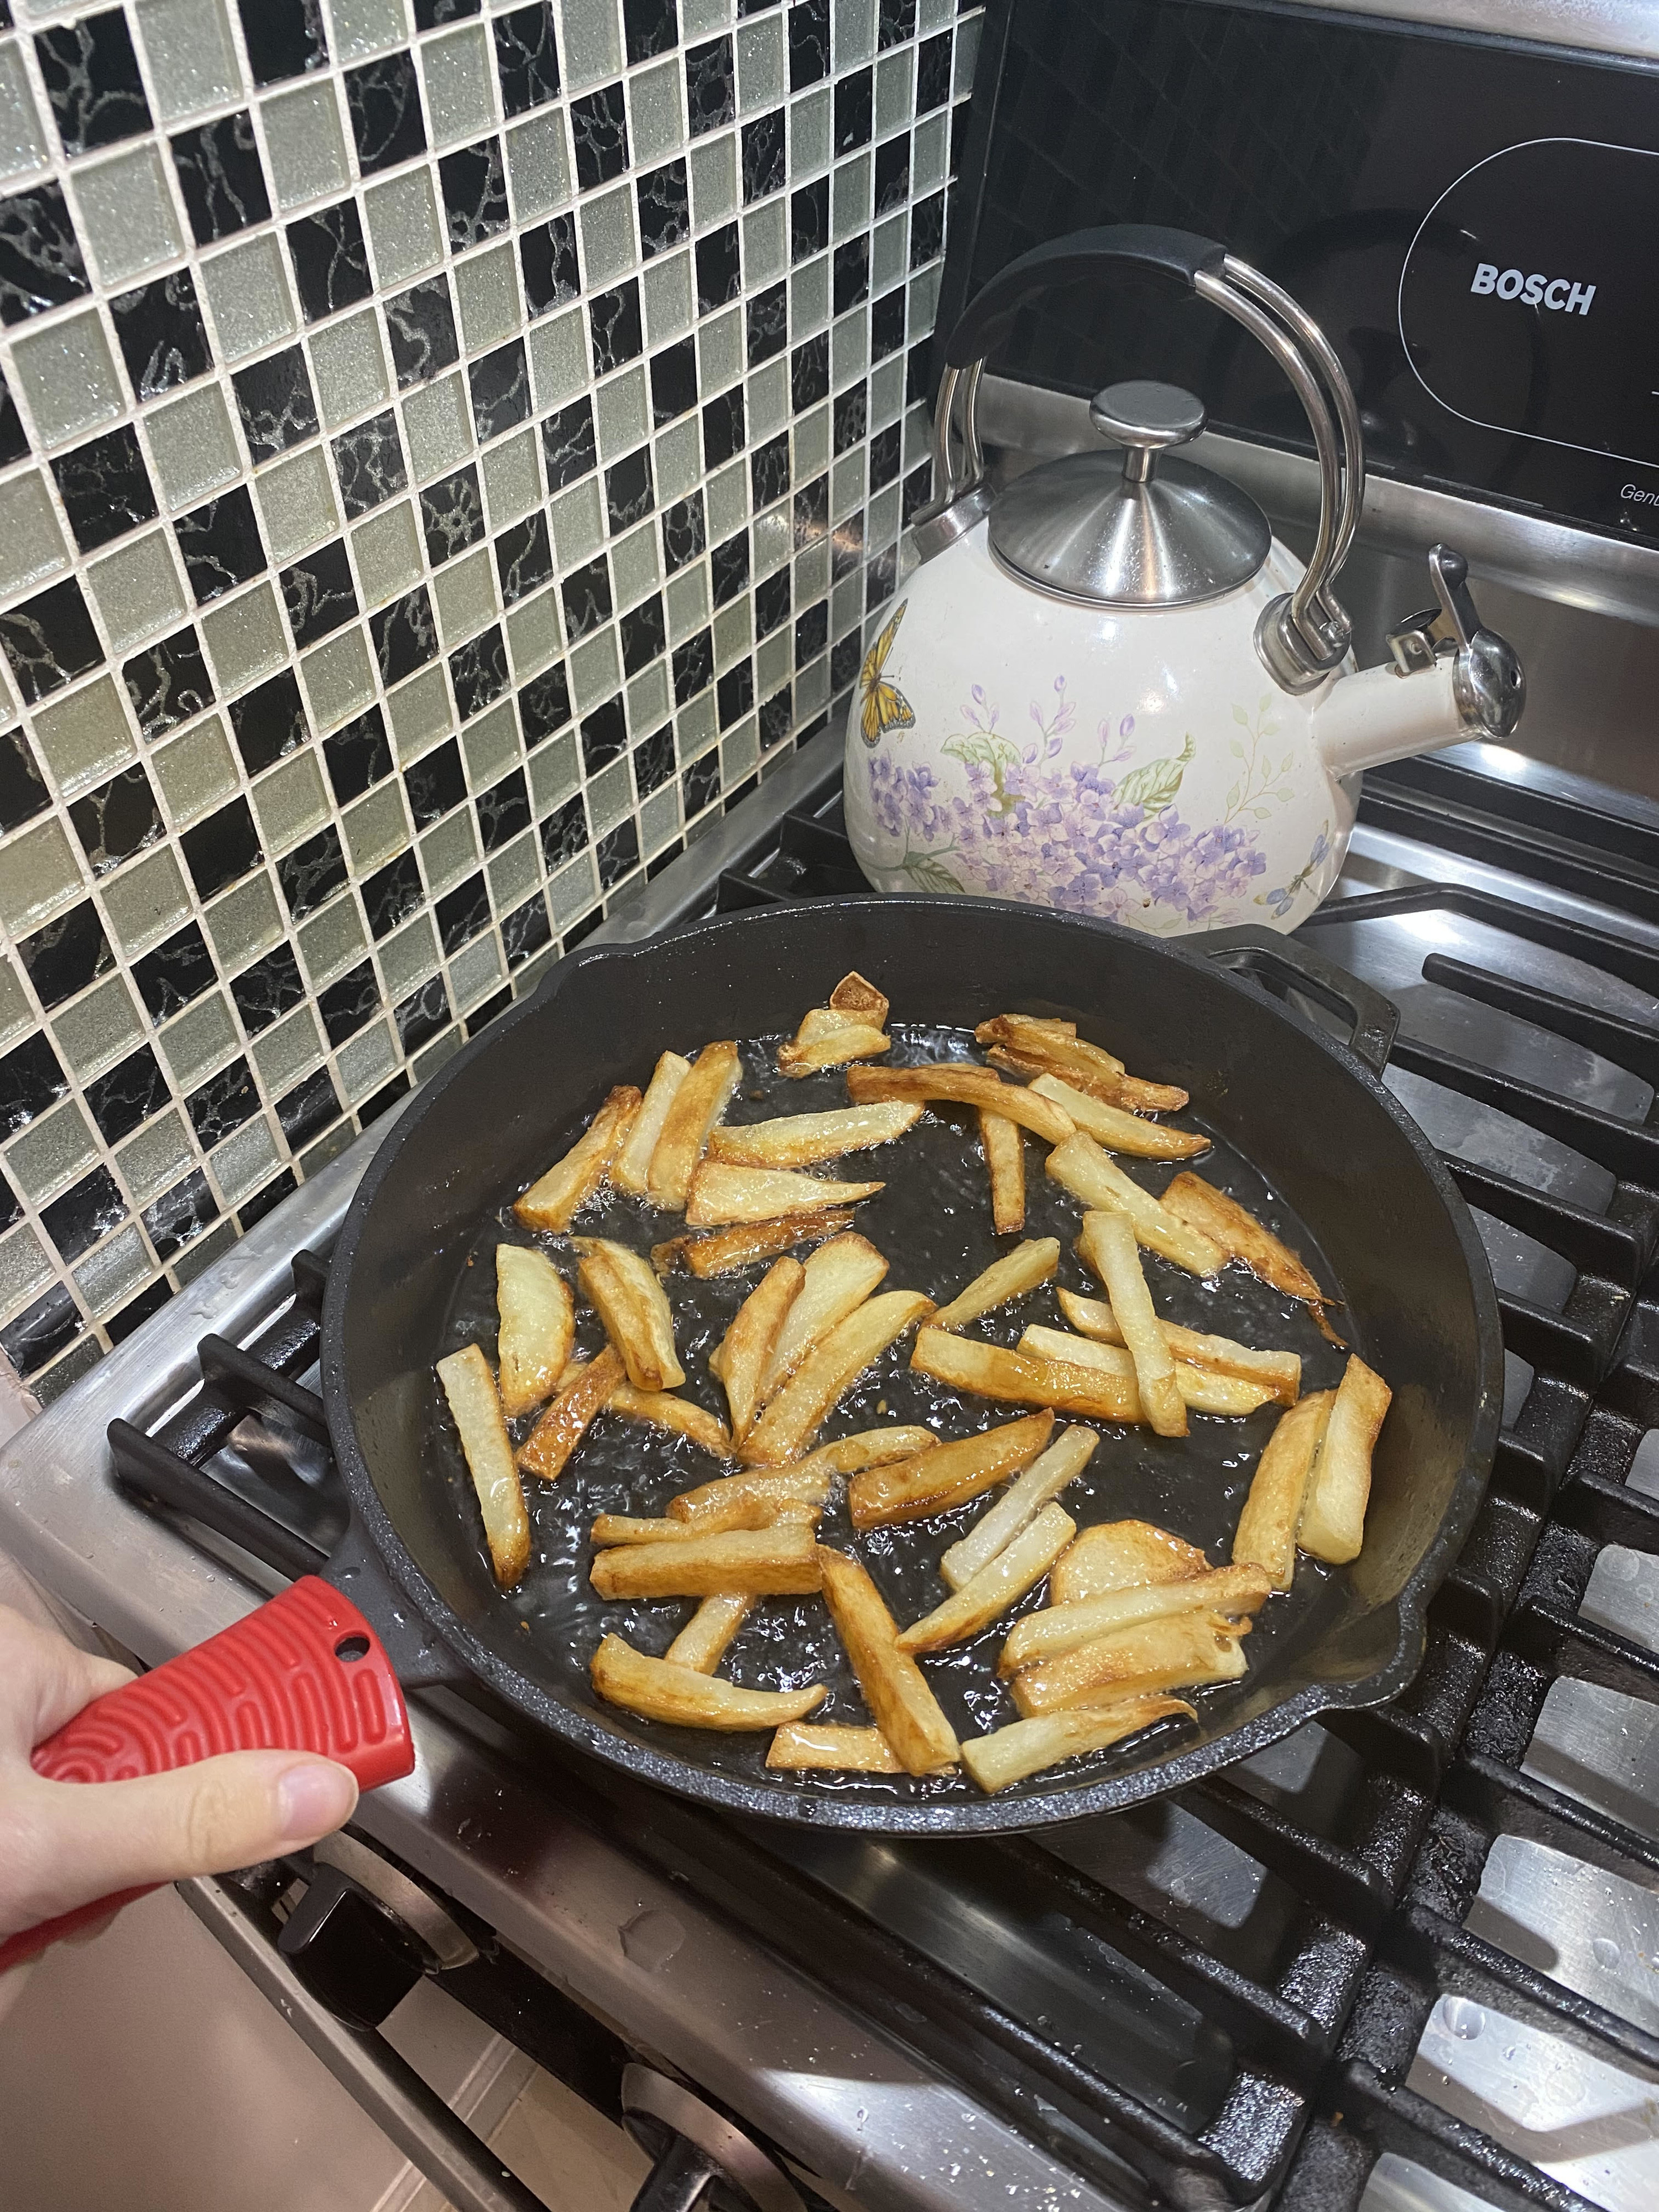 the author using the red handle holder on a cast-iron pan with french fries in it